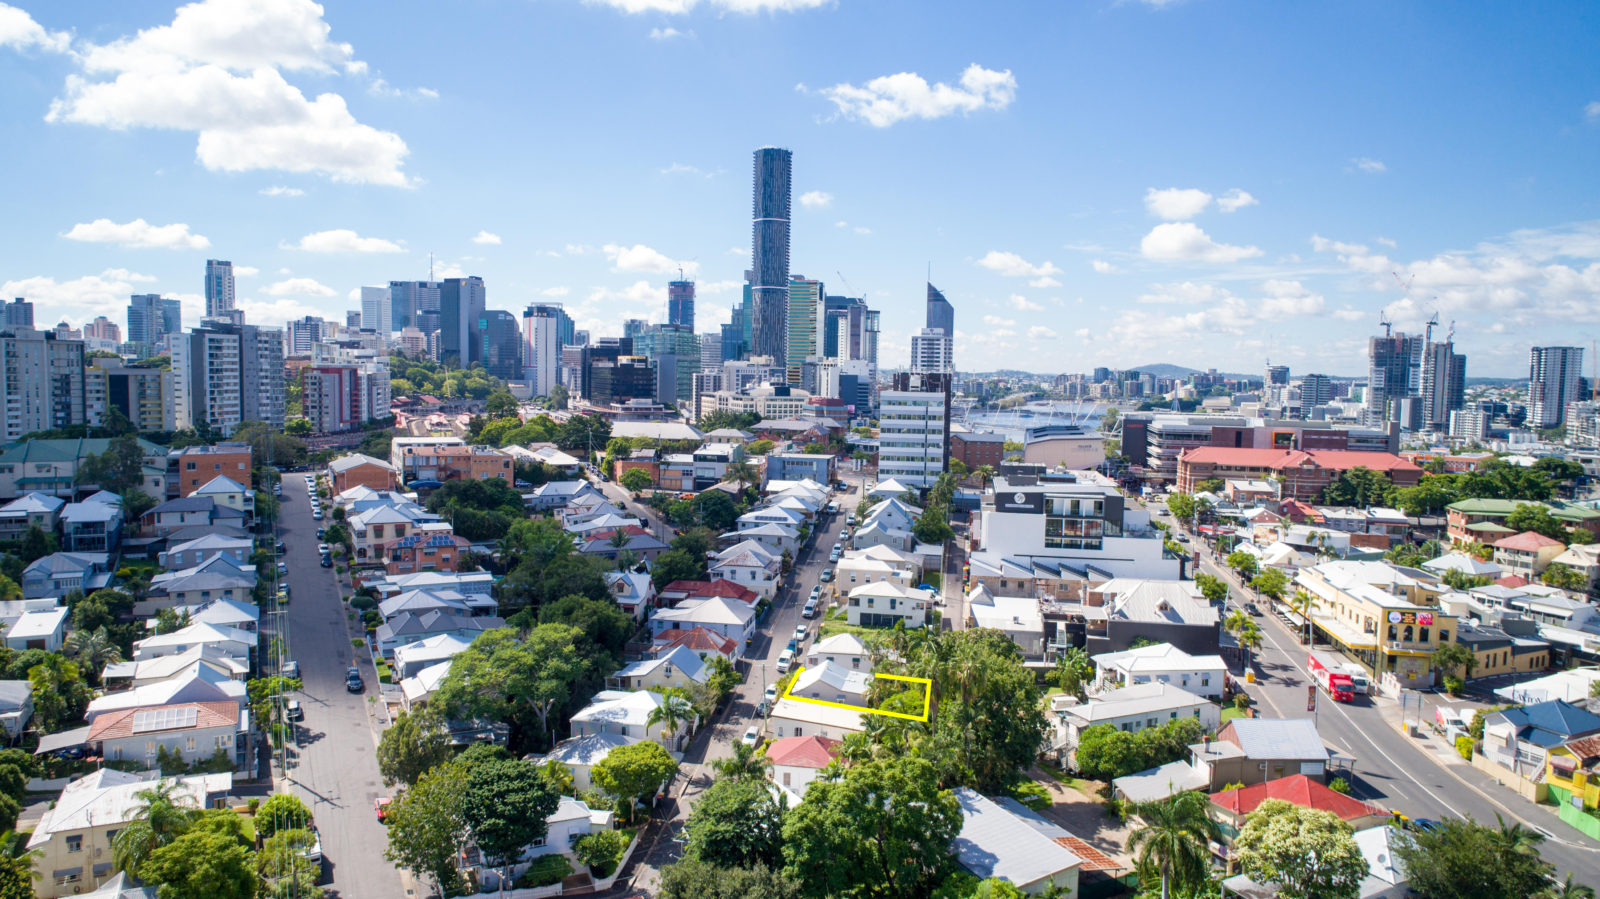 Drone operator Brisbane real estate photography